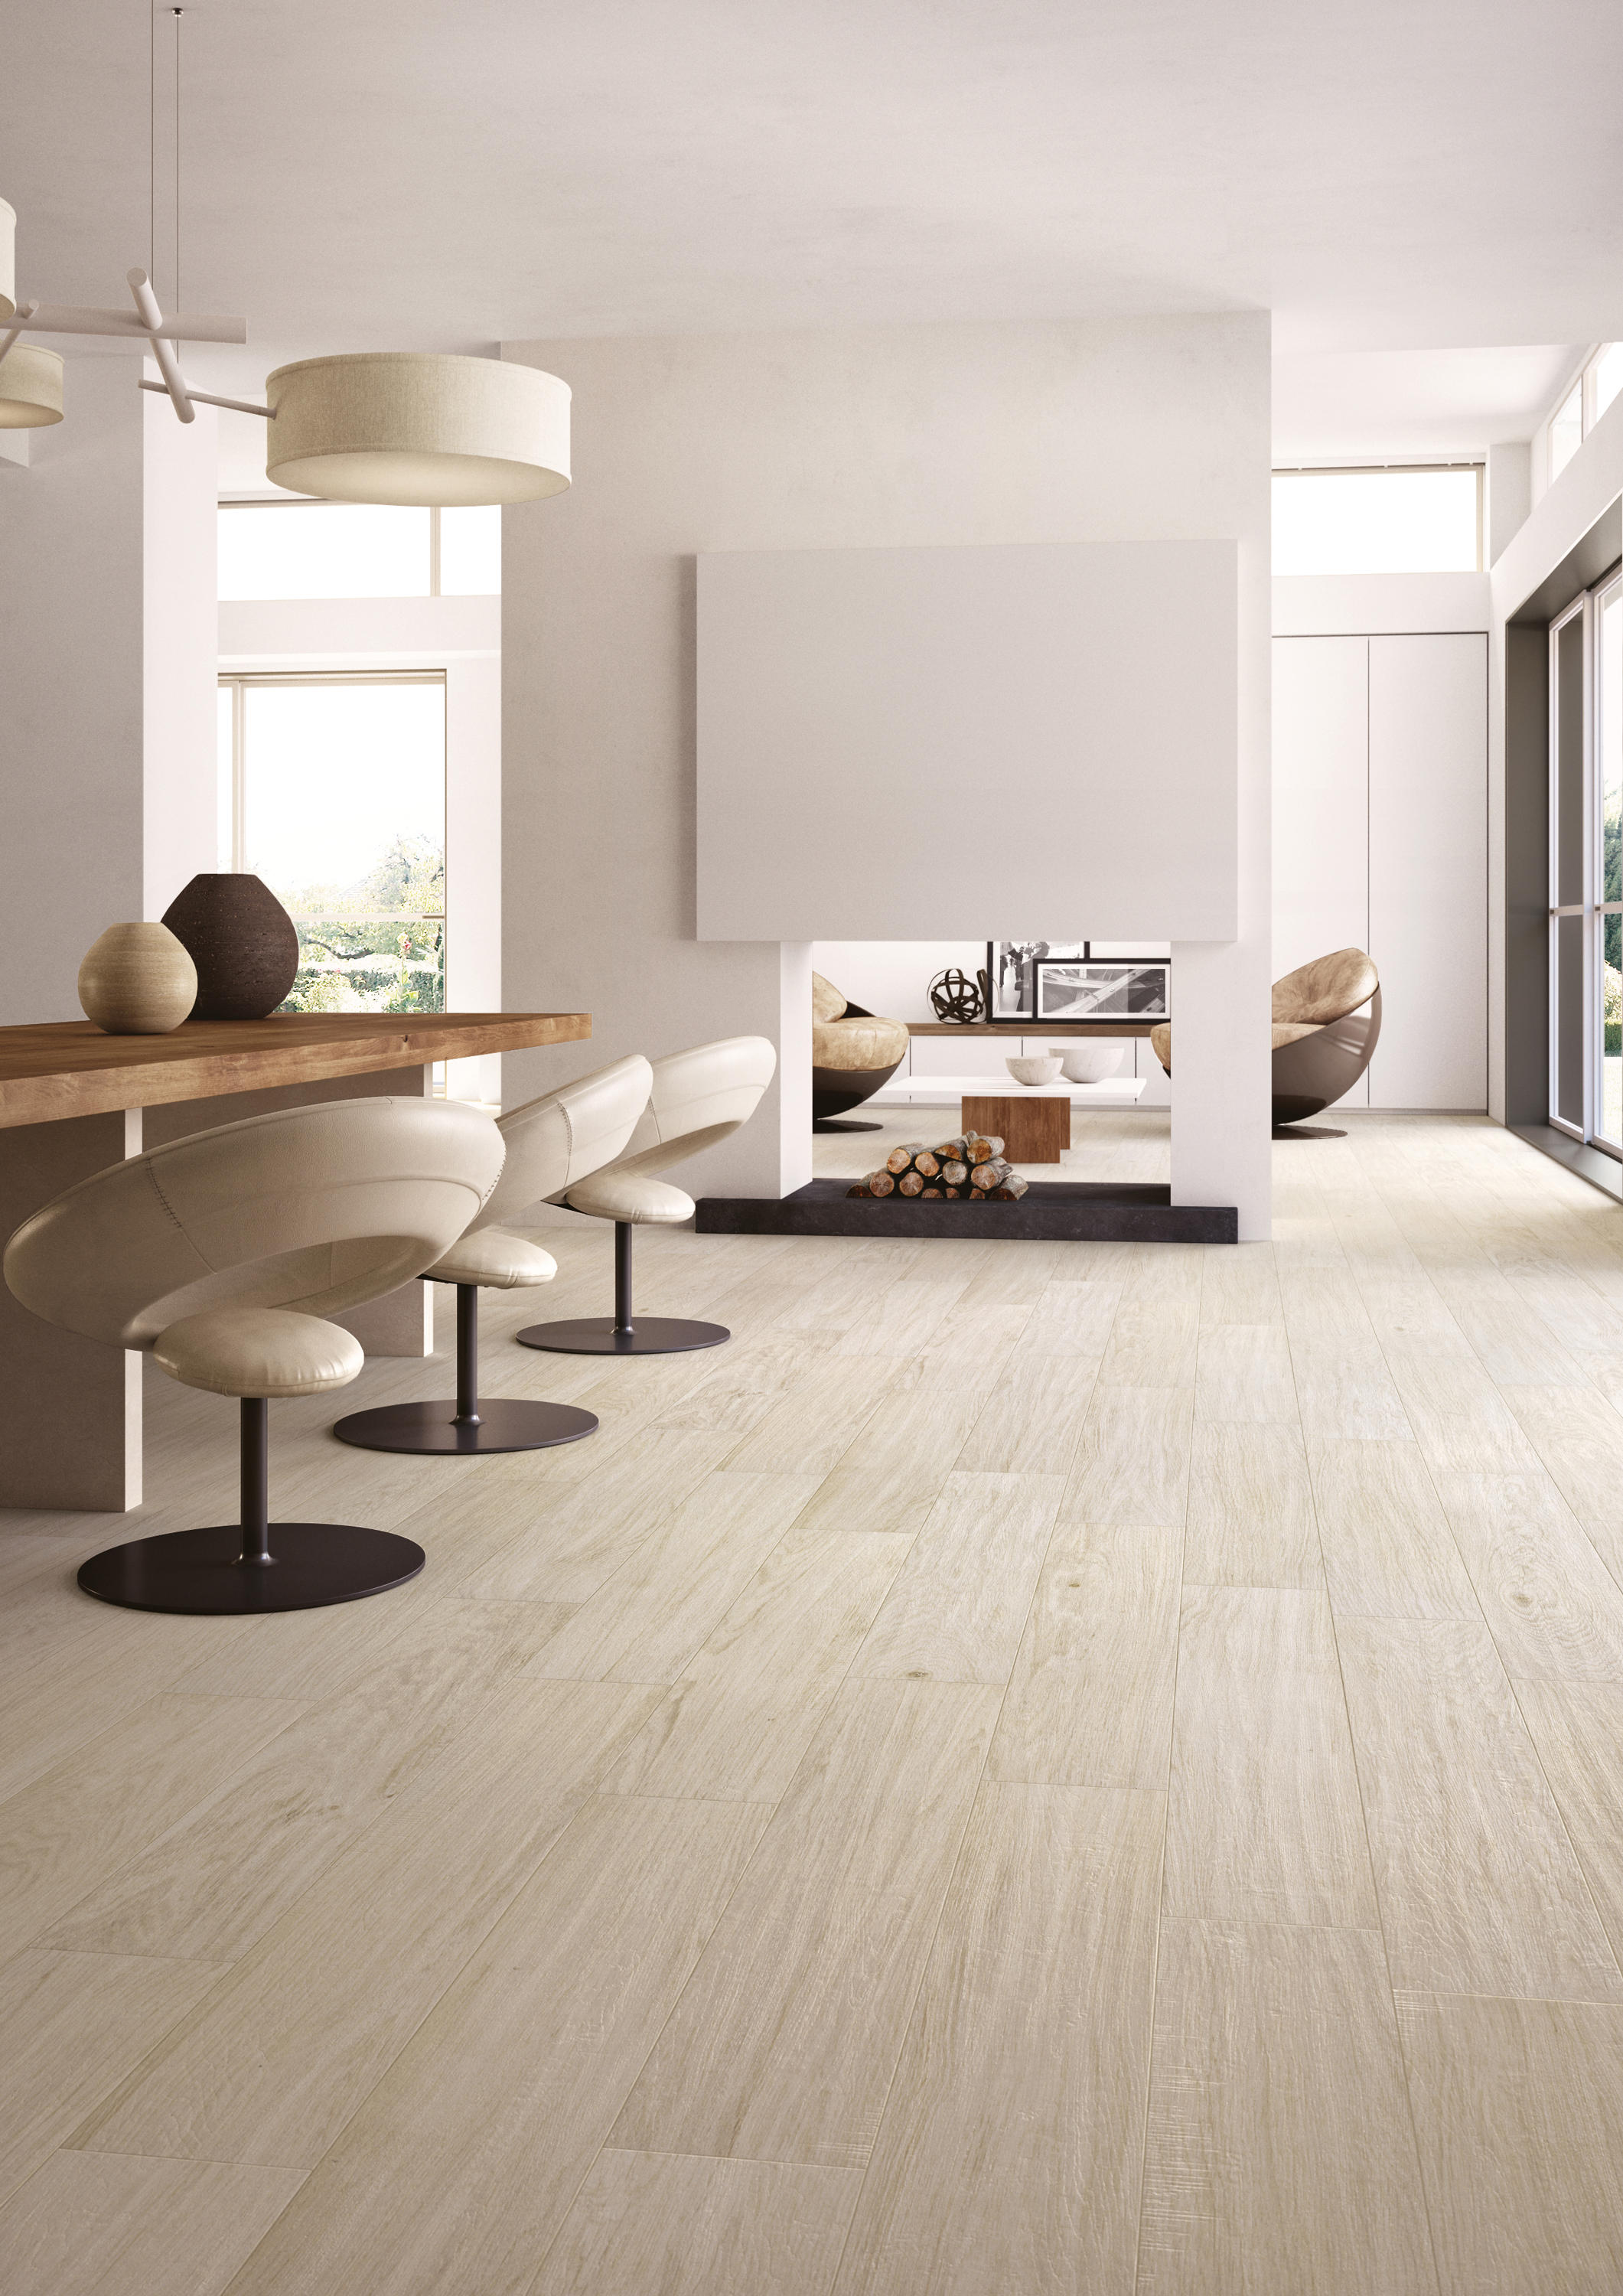 Silvis candeo floor tiles from cotto d 39 este architonic for Carrelage cotto d este prix